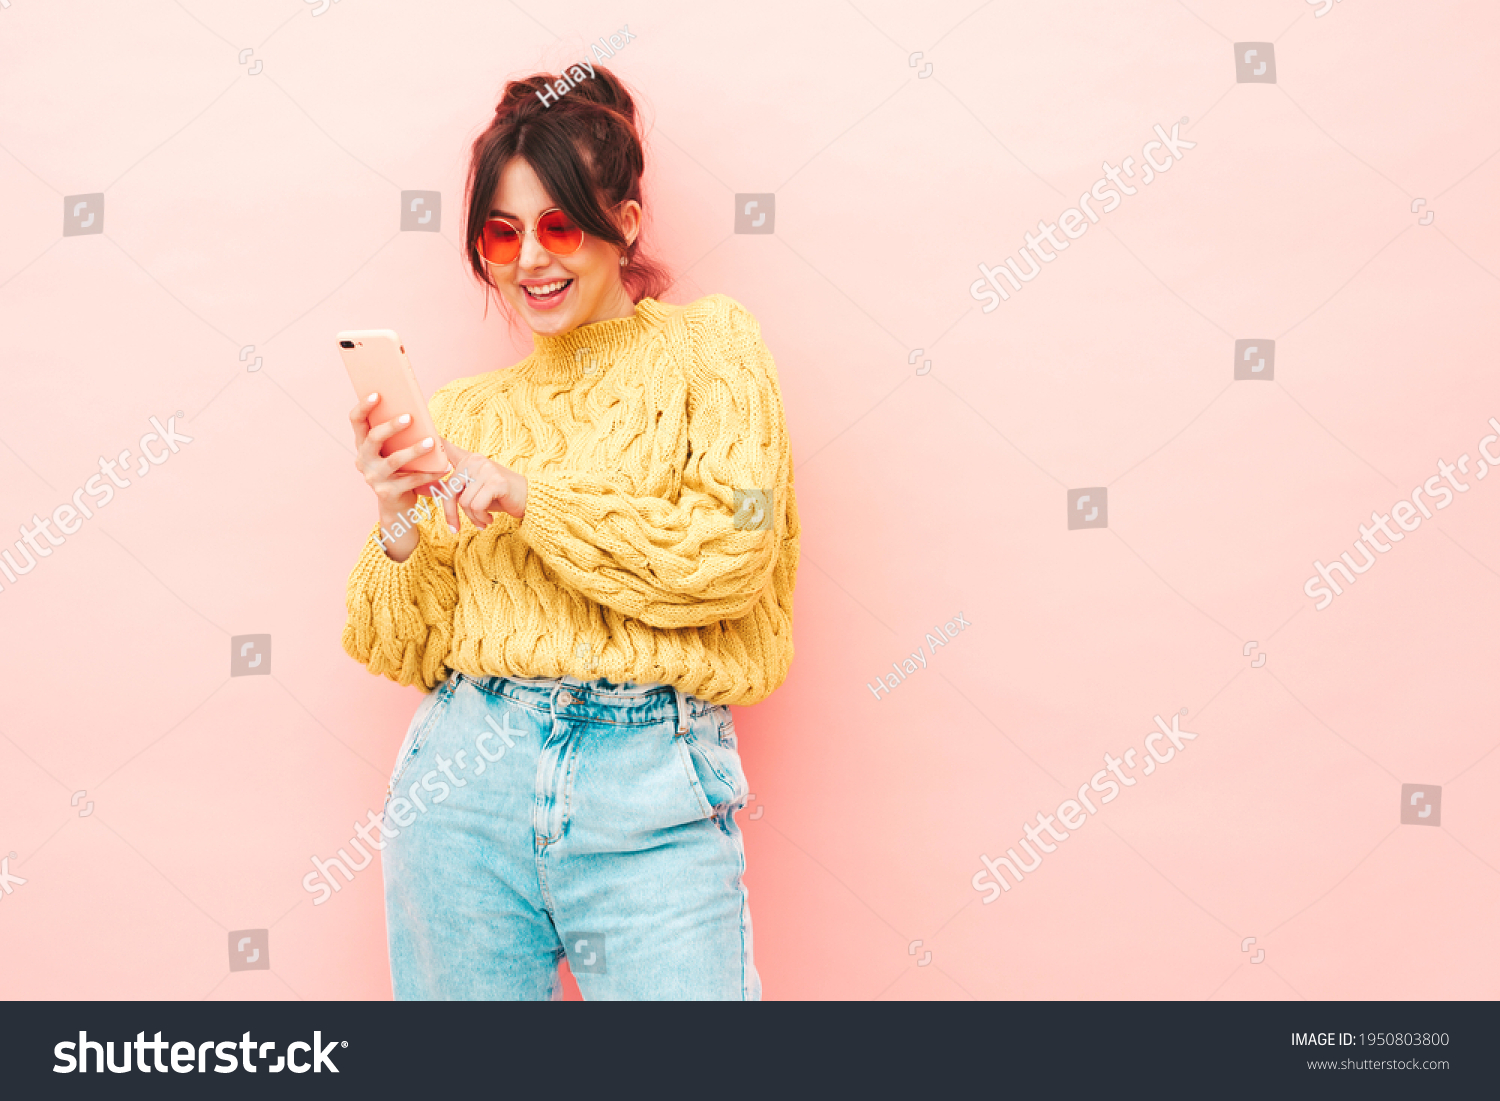 Young beautiful smiling female in trendy summer yellow hipster sweater and jeans.Sexy carefree woman posing near pink wall in studio.Positive model having fun. Looking at smartphone screen, using app #1950803800